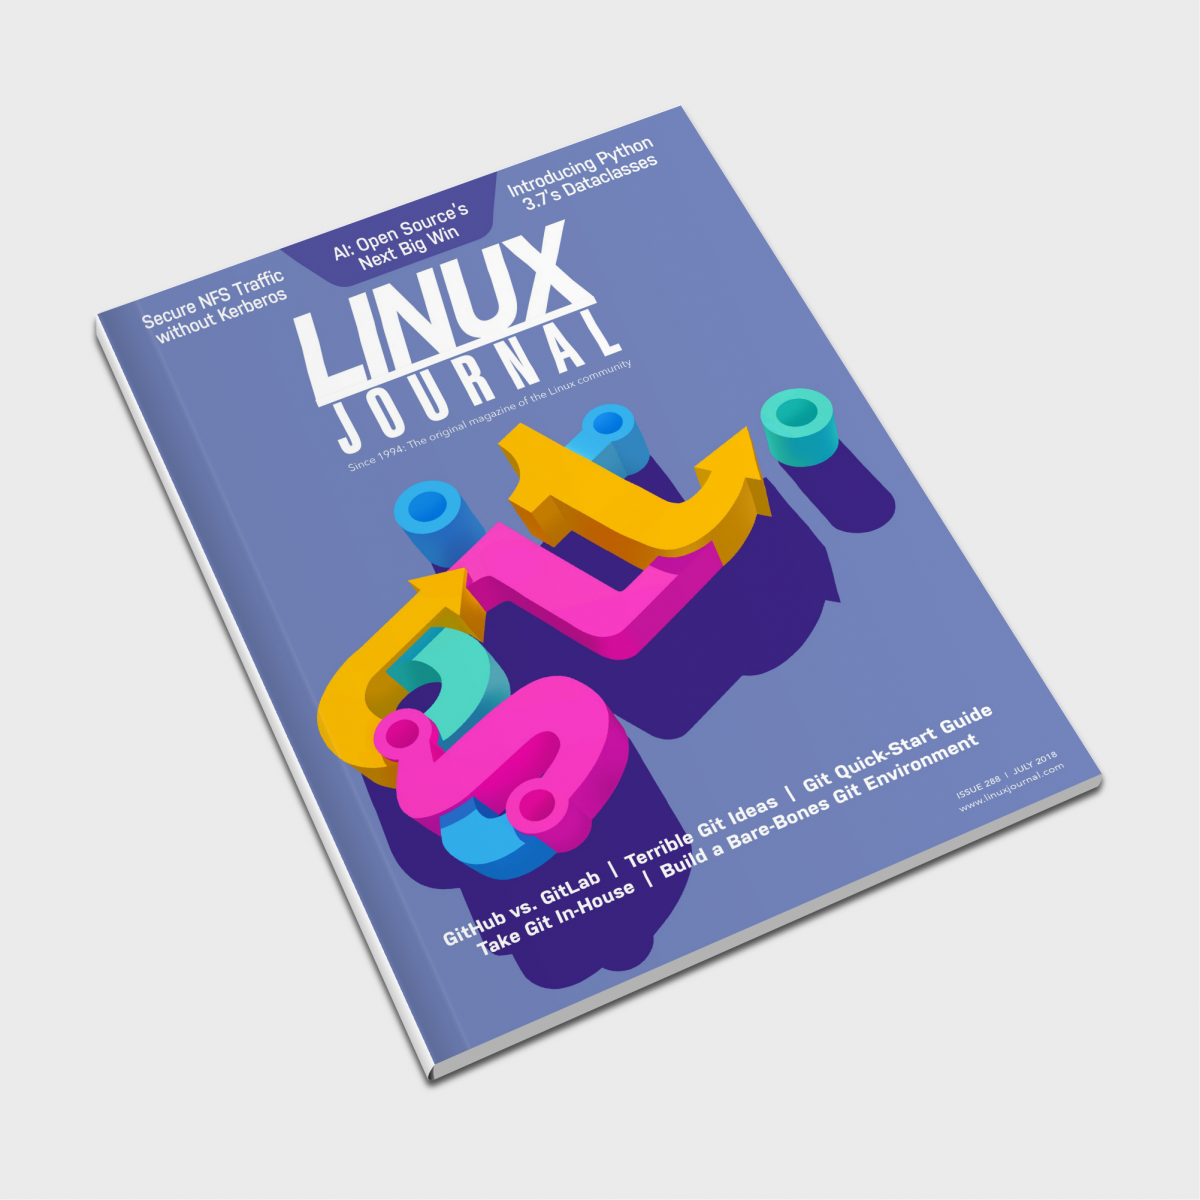 Linux Journal 'Git' Cover